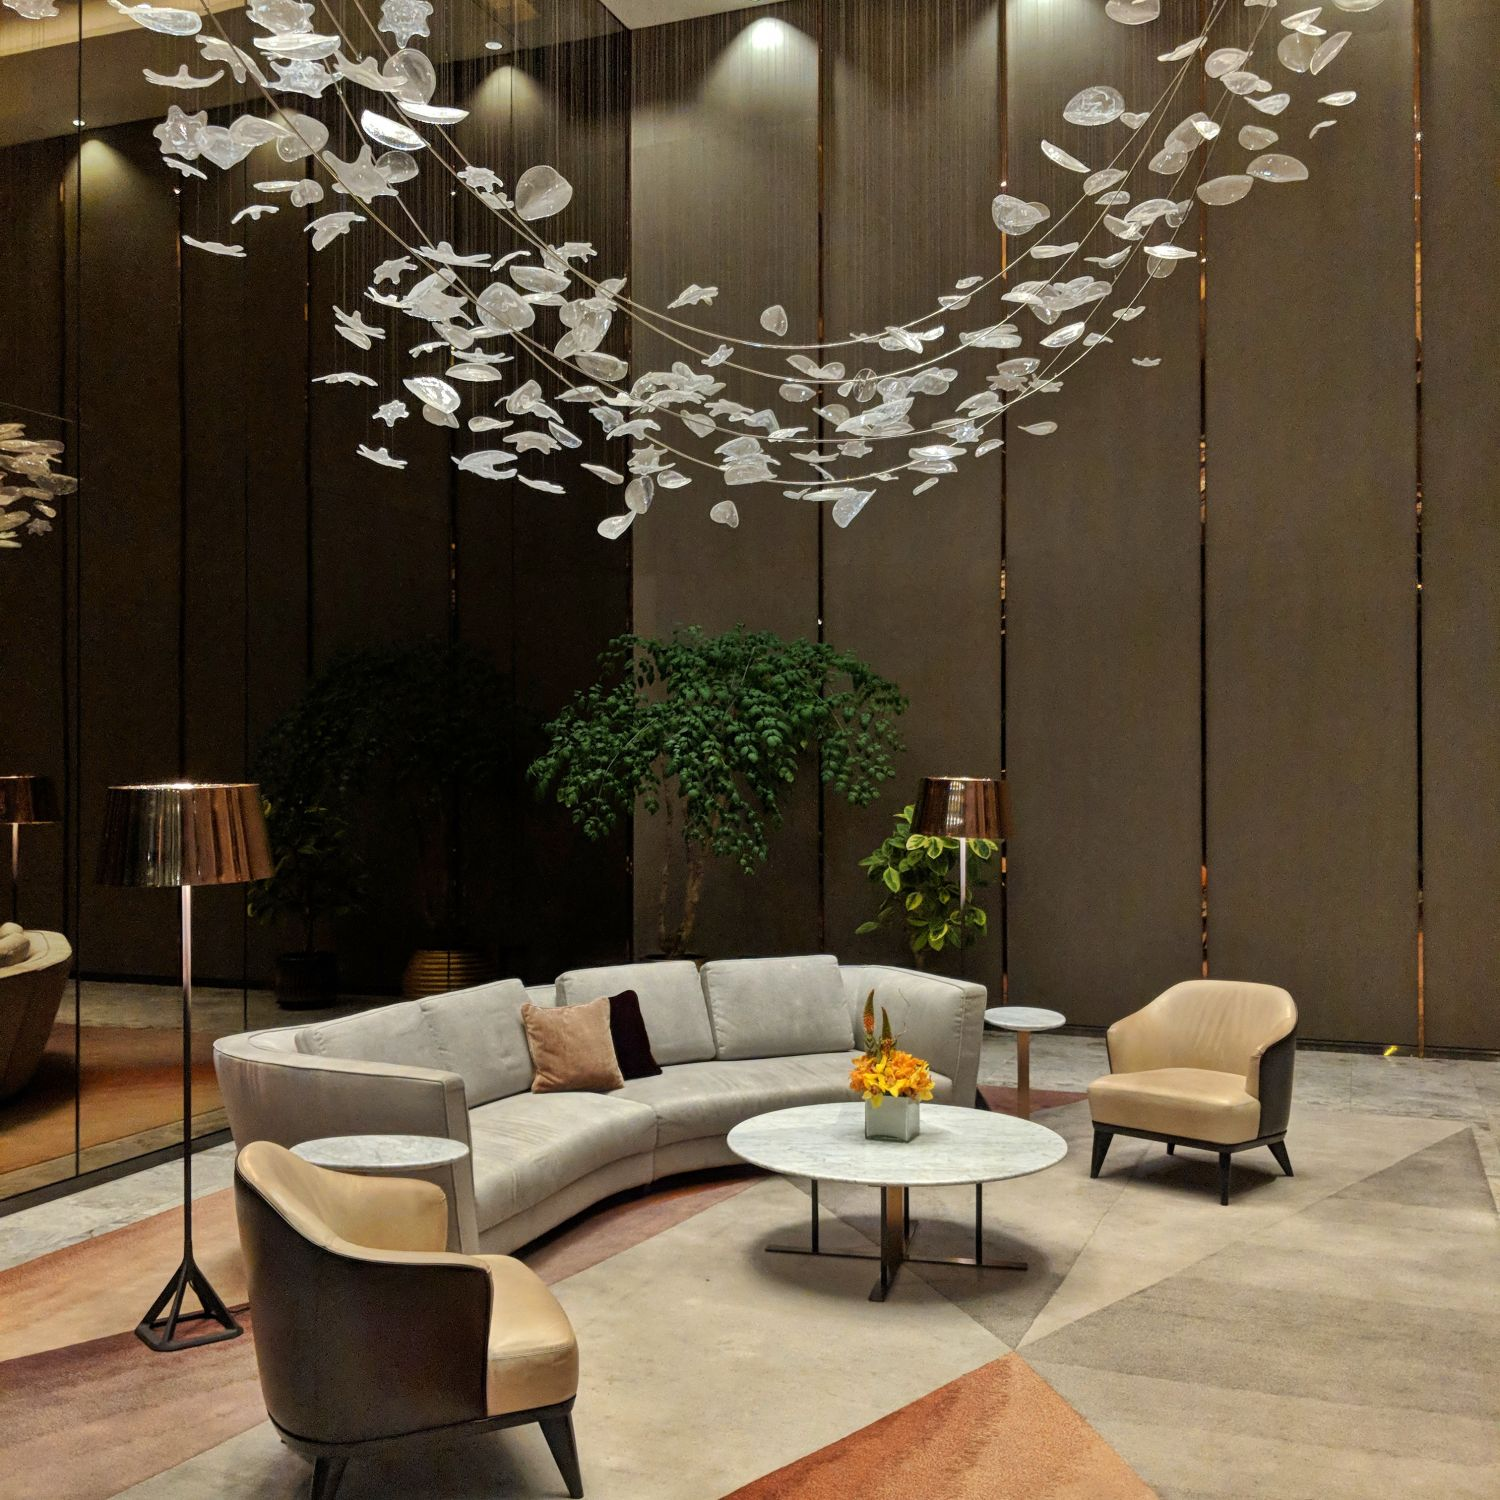 sofitel singapore city centre ground level lobby